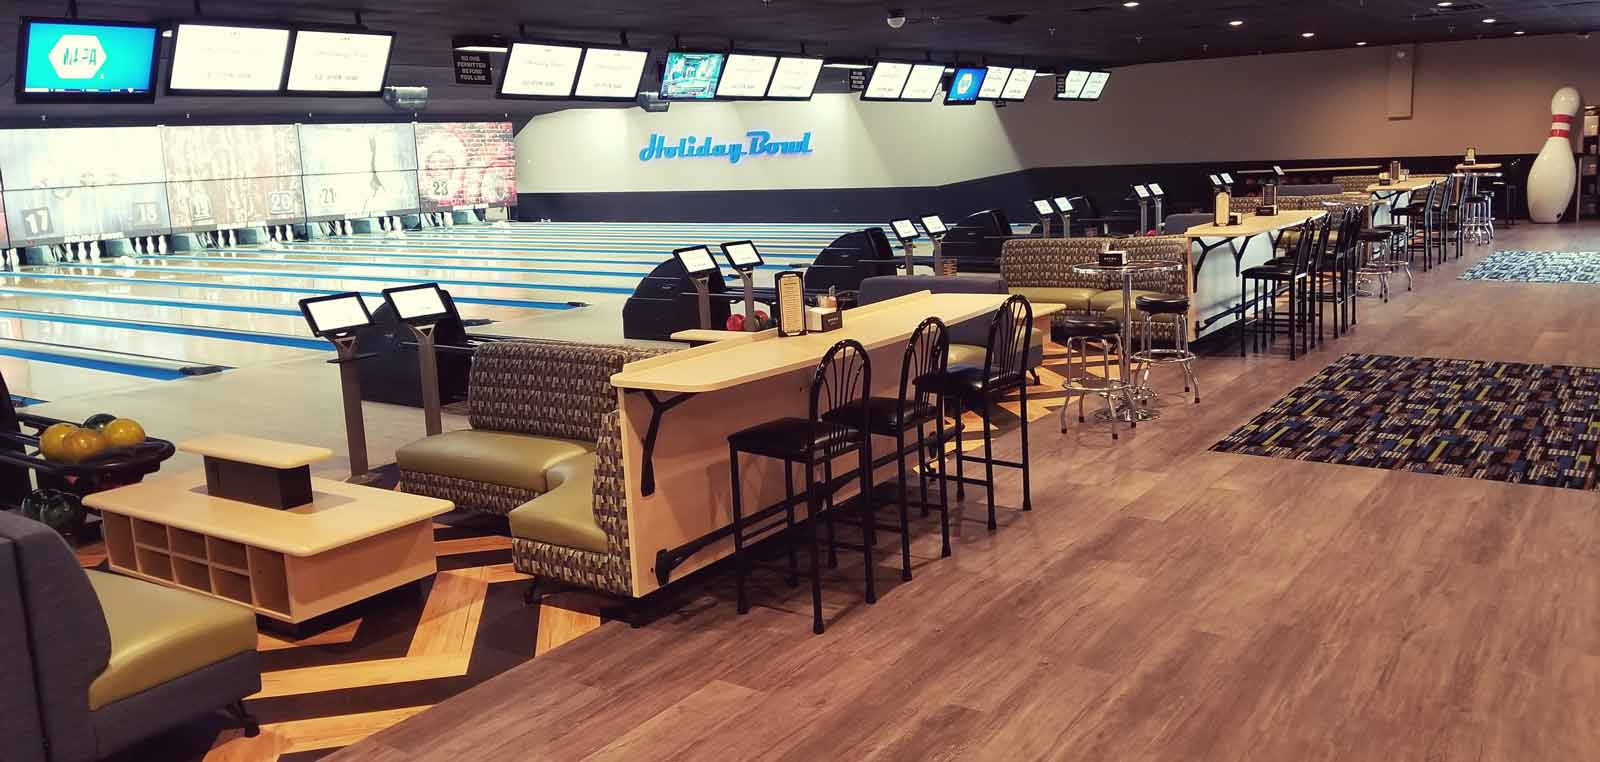 Holiday Bowl NJ Bowling alleys and Events